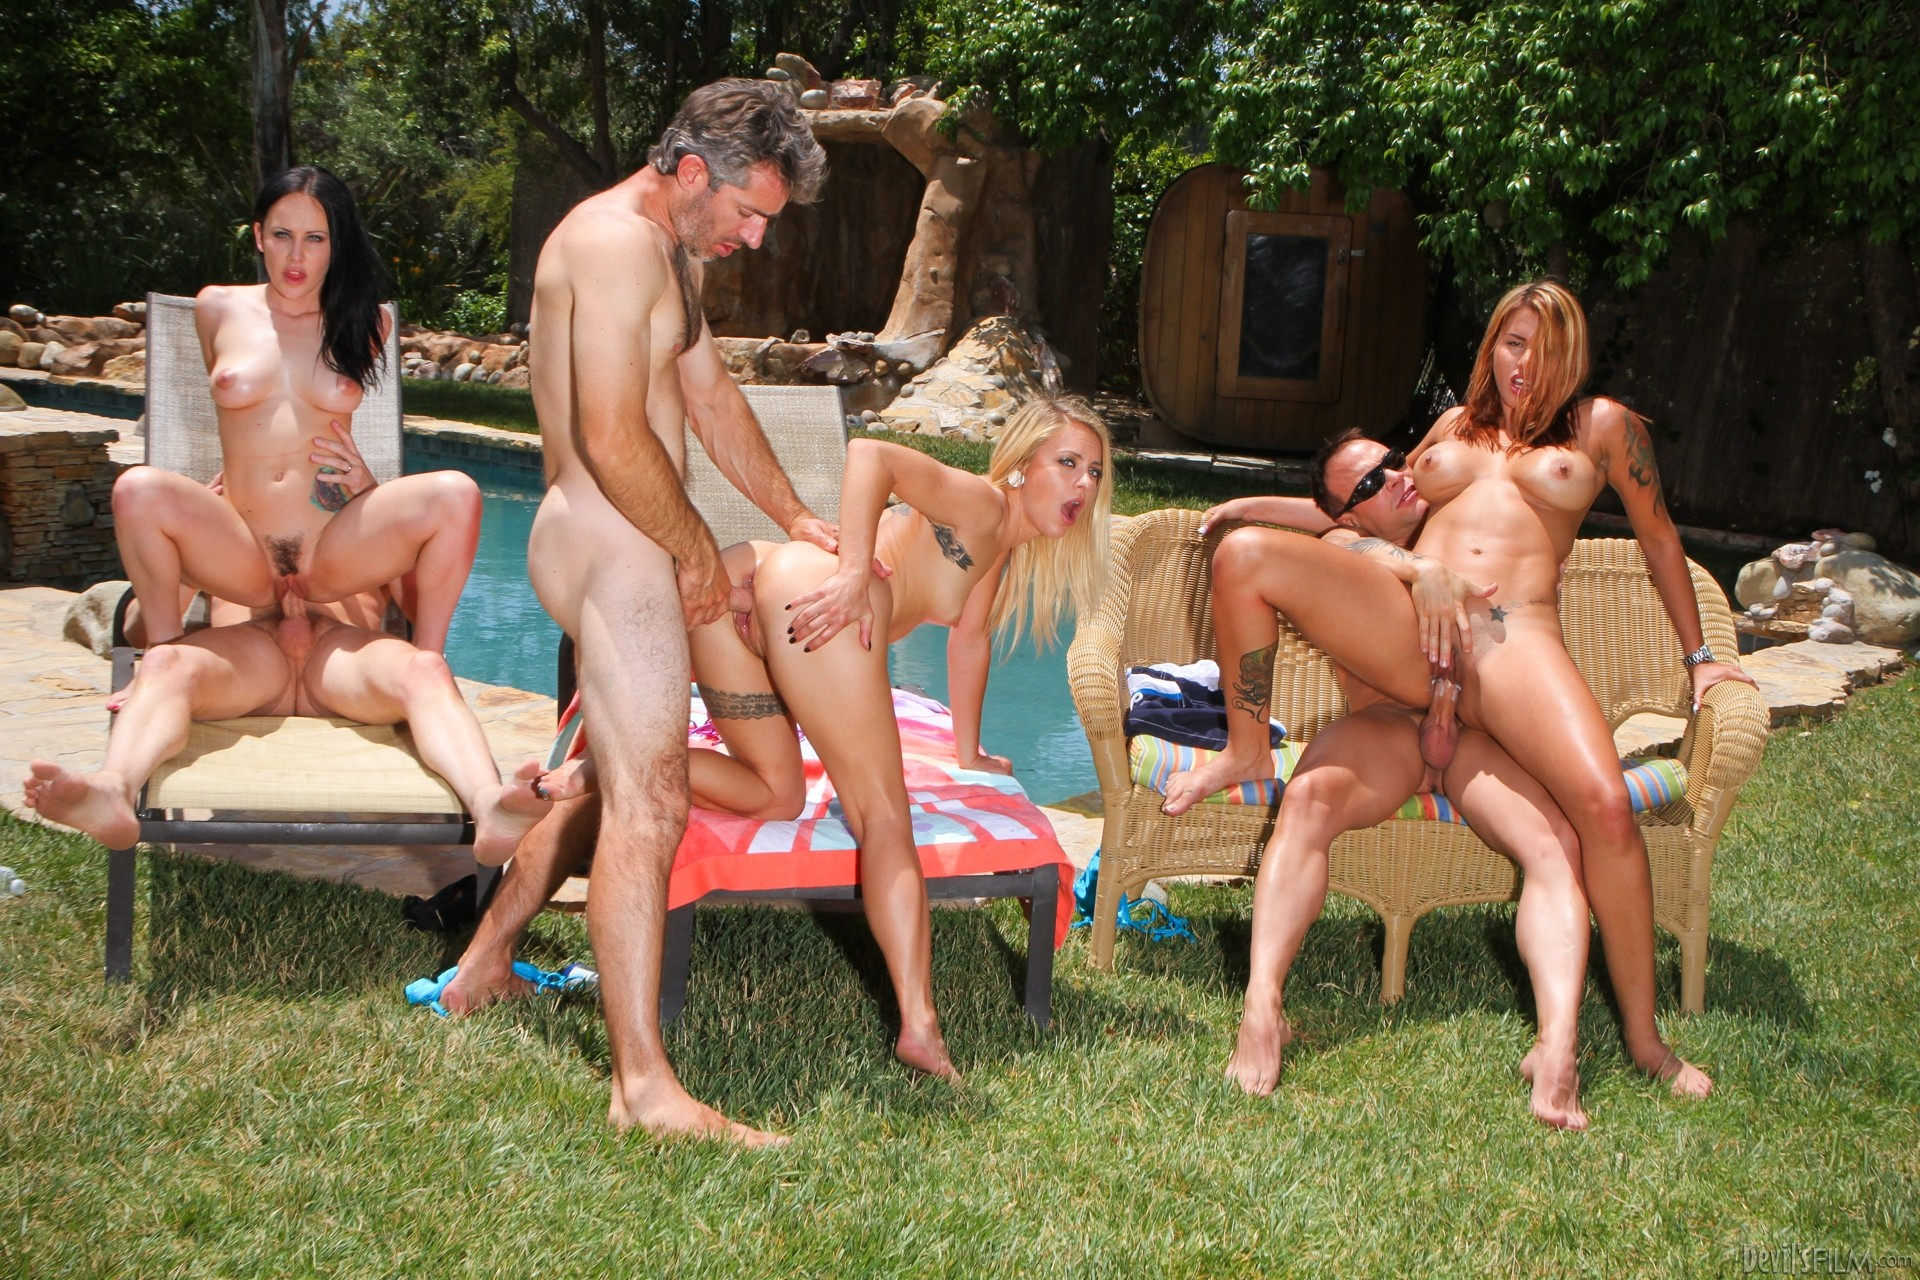 hot-swinger-oasis-nude-showing